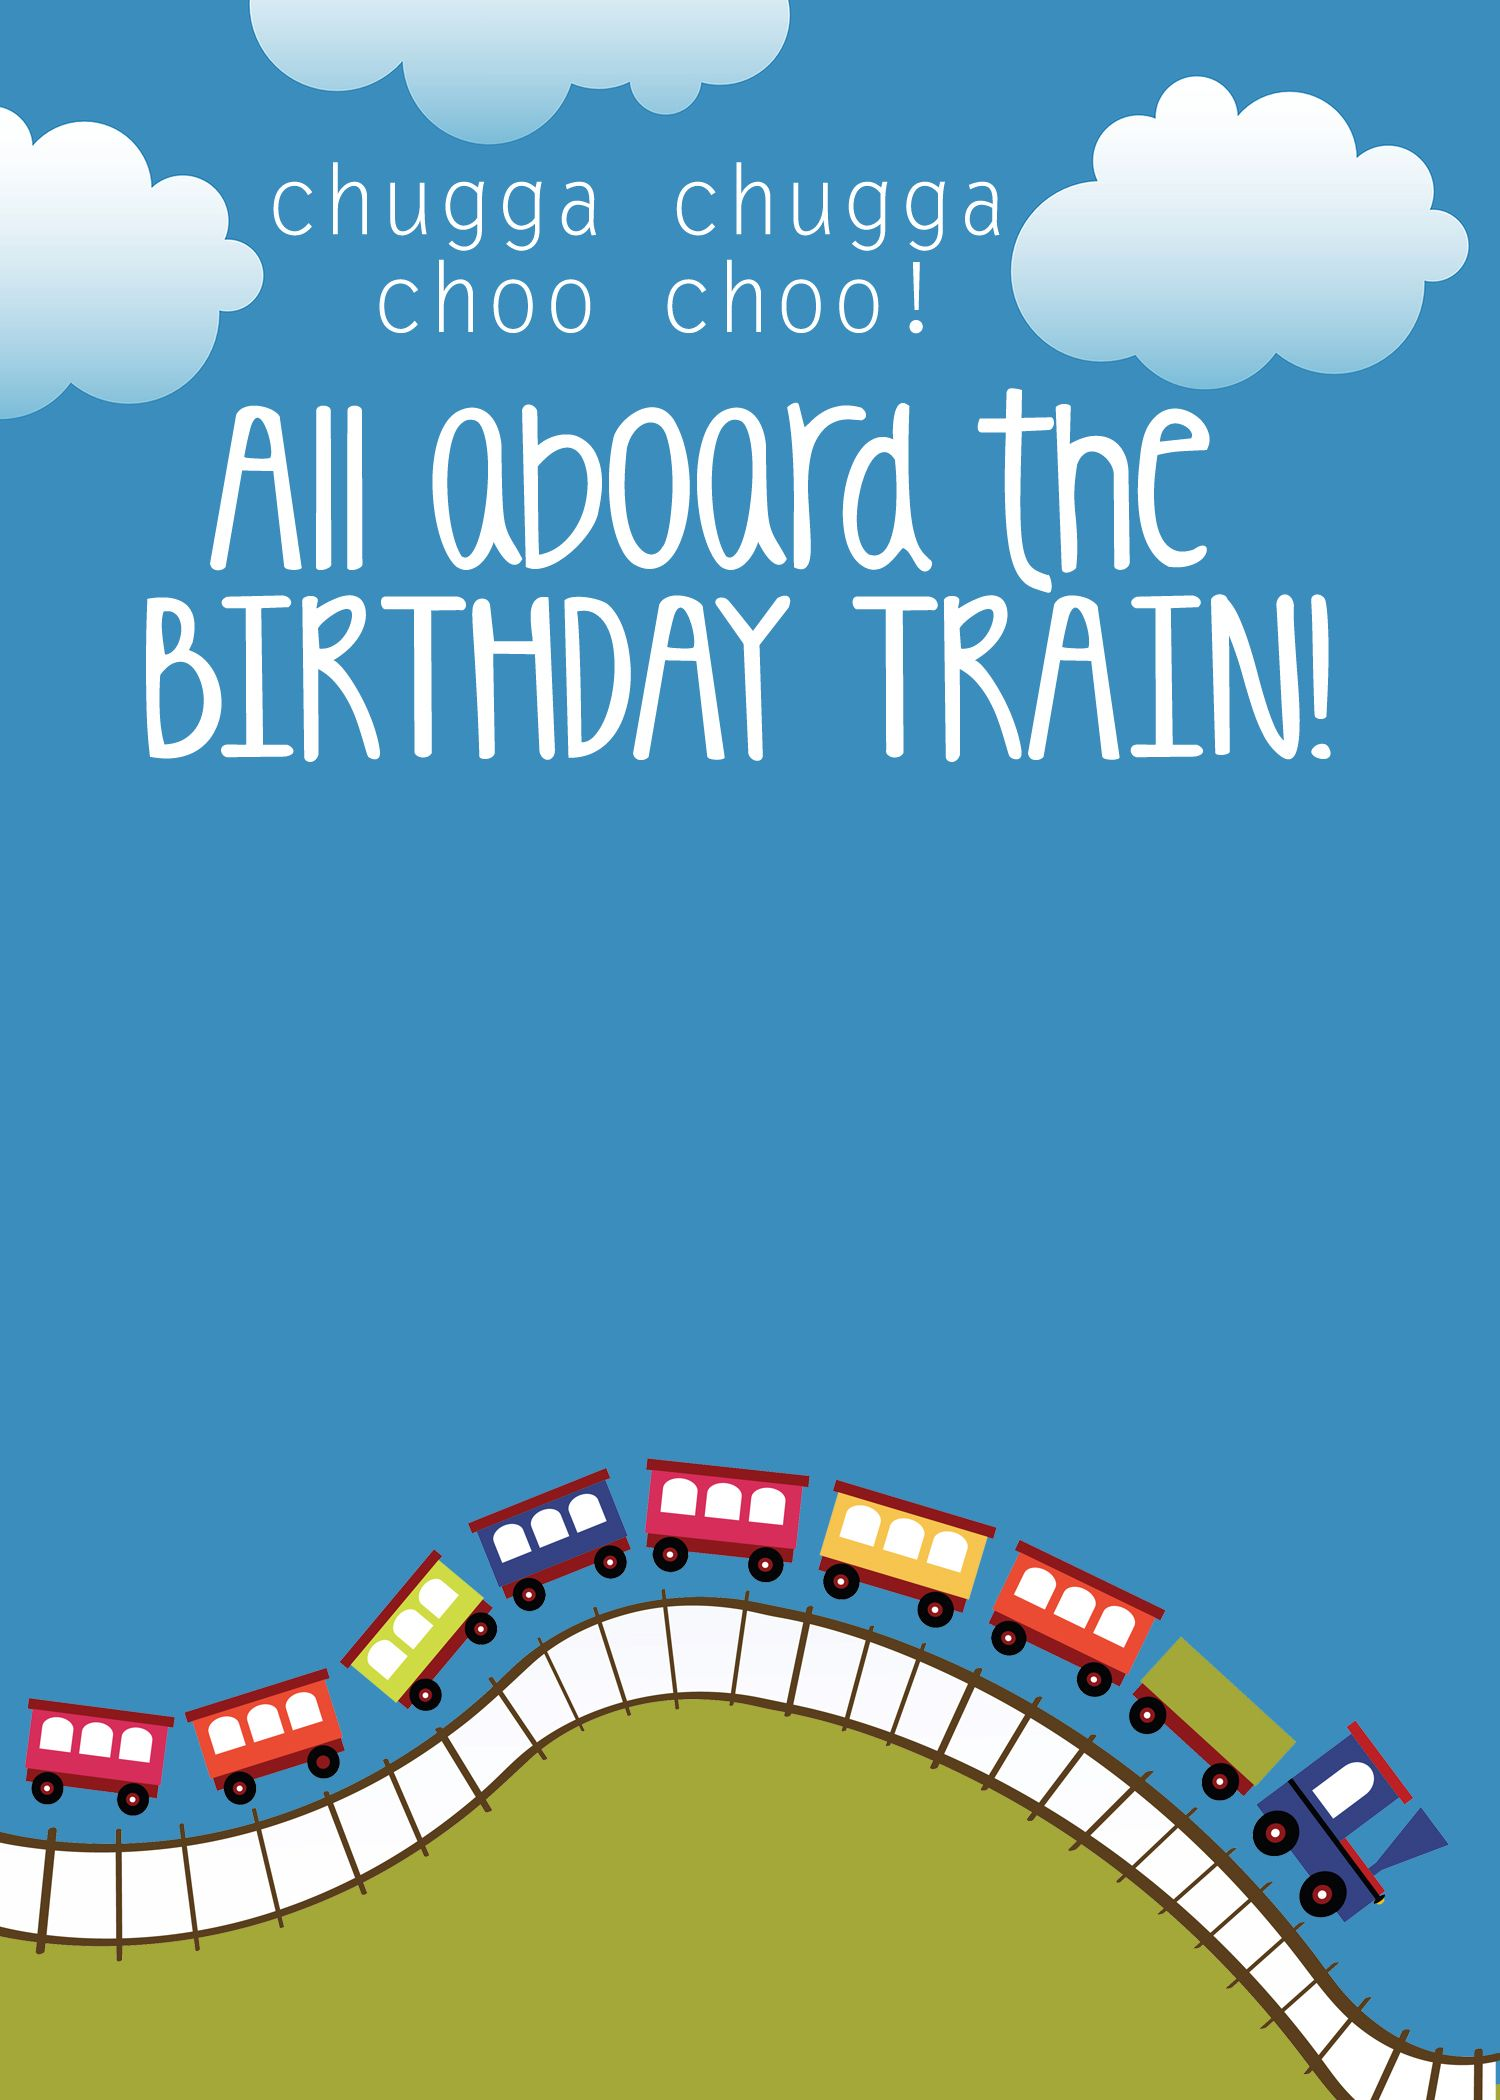 Train Themed Birthday Party With FREE Printables Party Invitation - Party invitation template: train party invitations templates